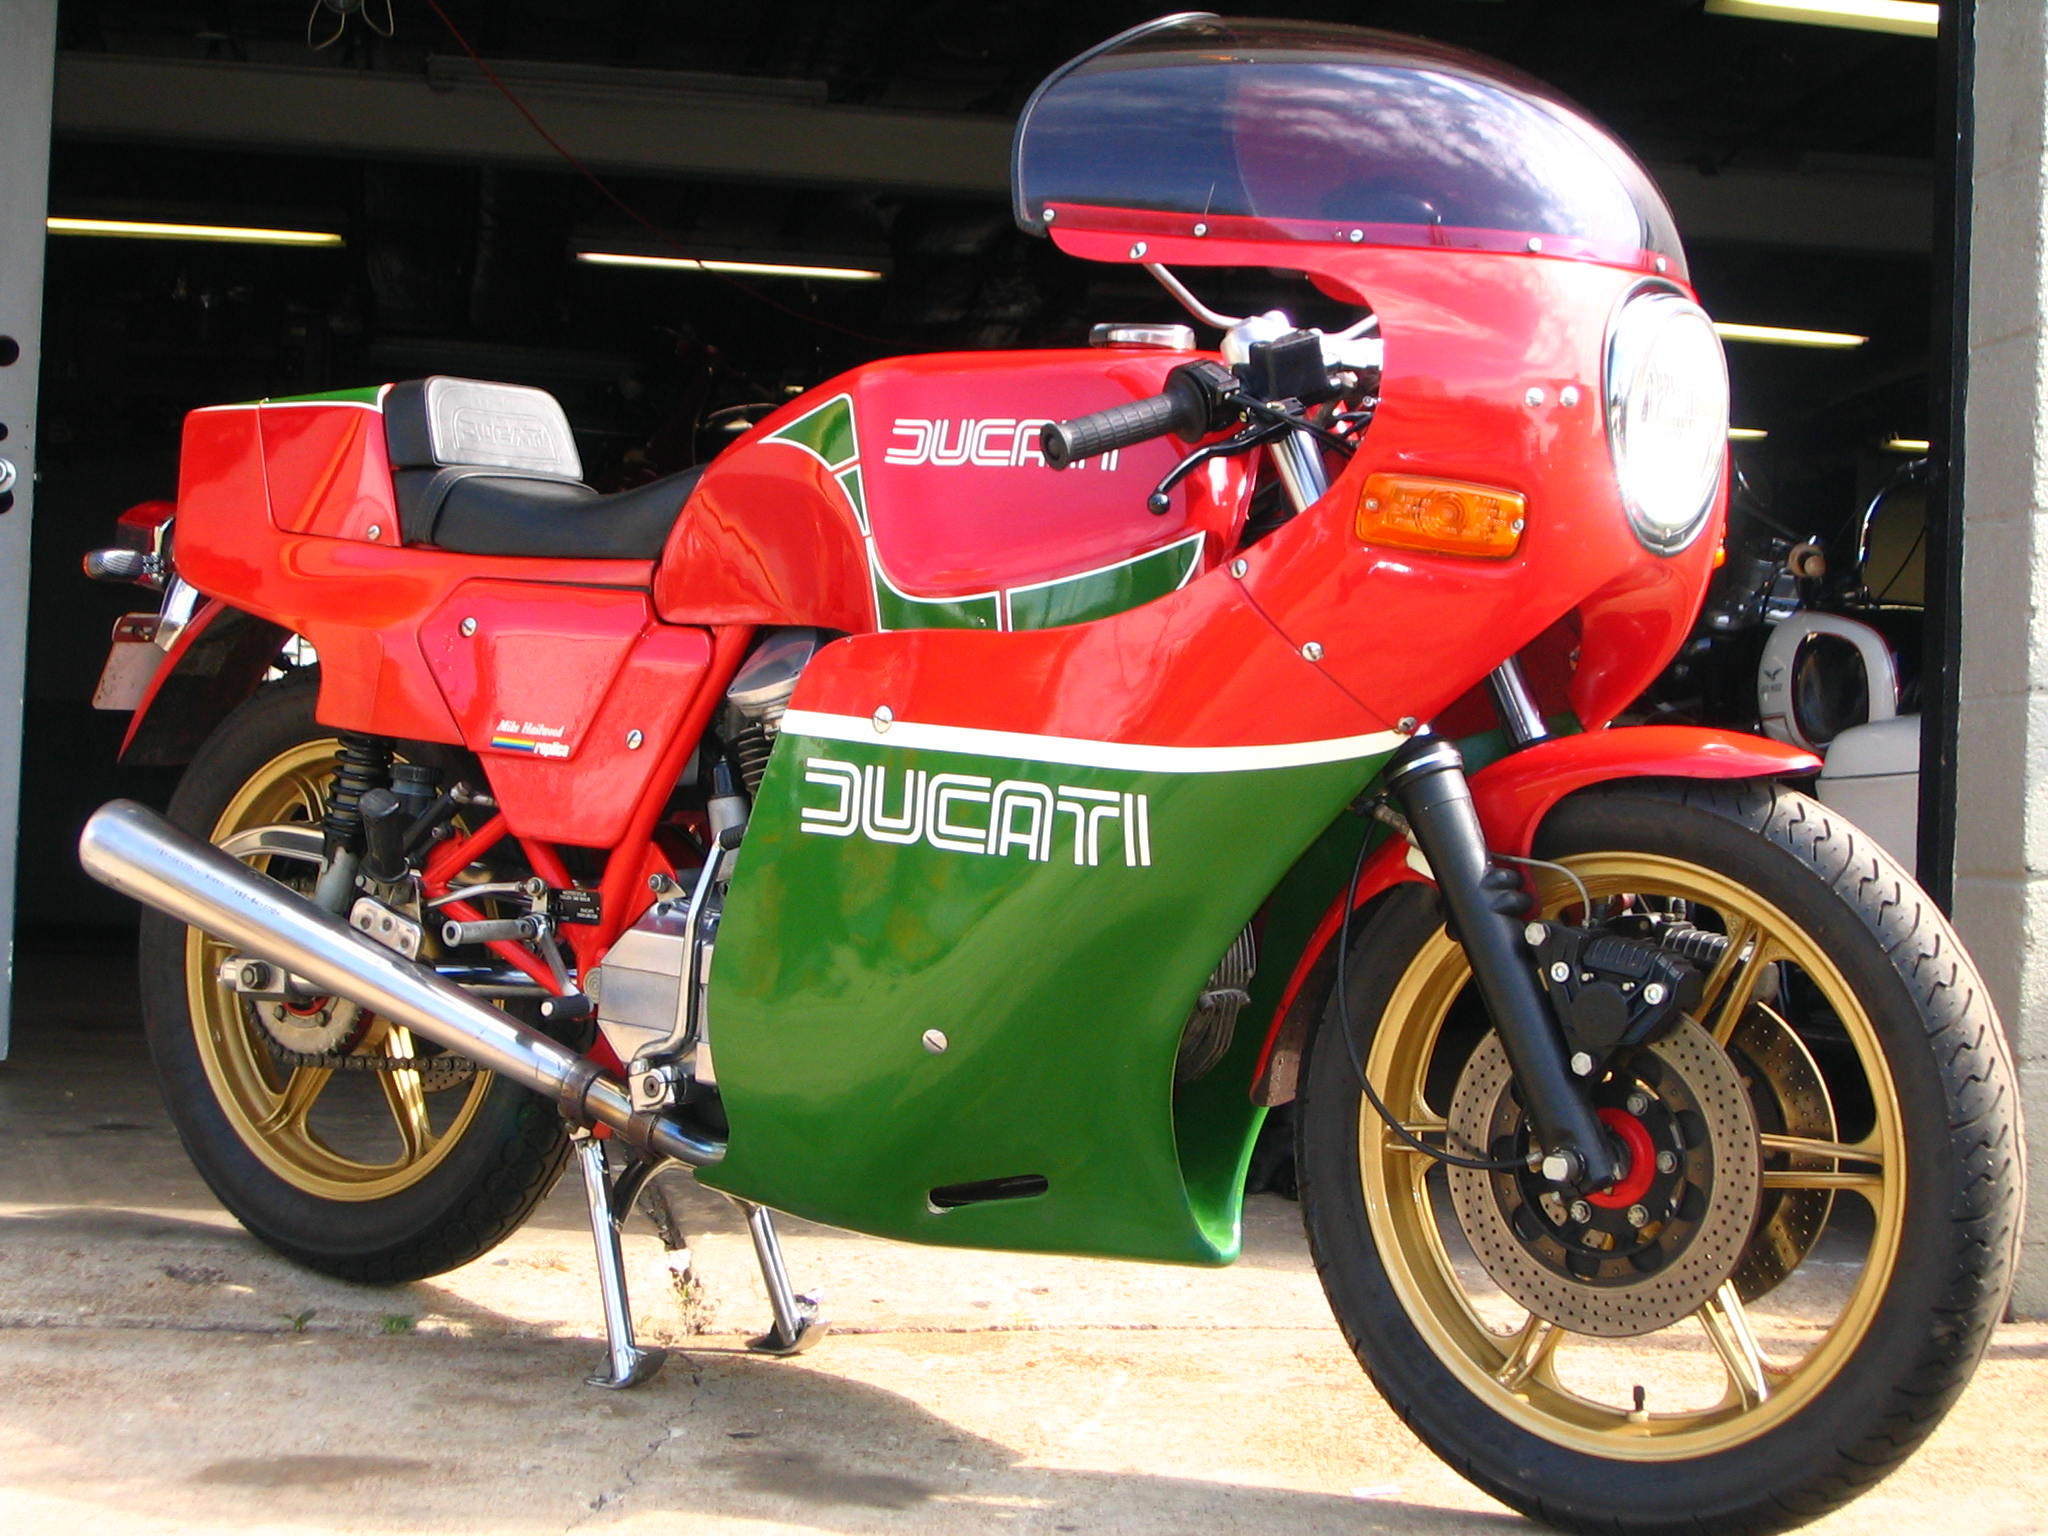 Ducati 900 SS Hailwood-Replica 1984 images #78700